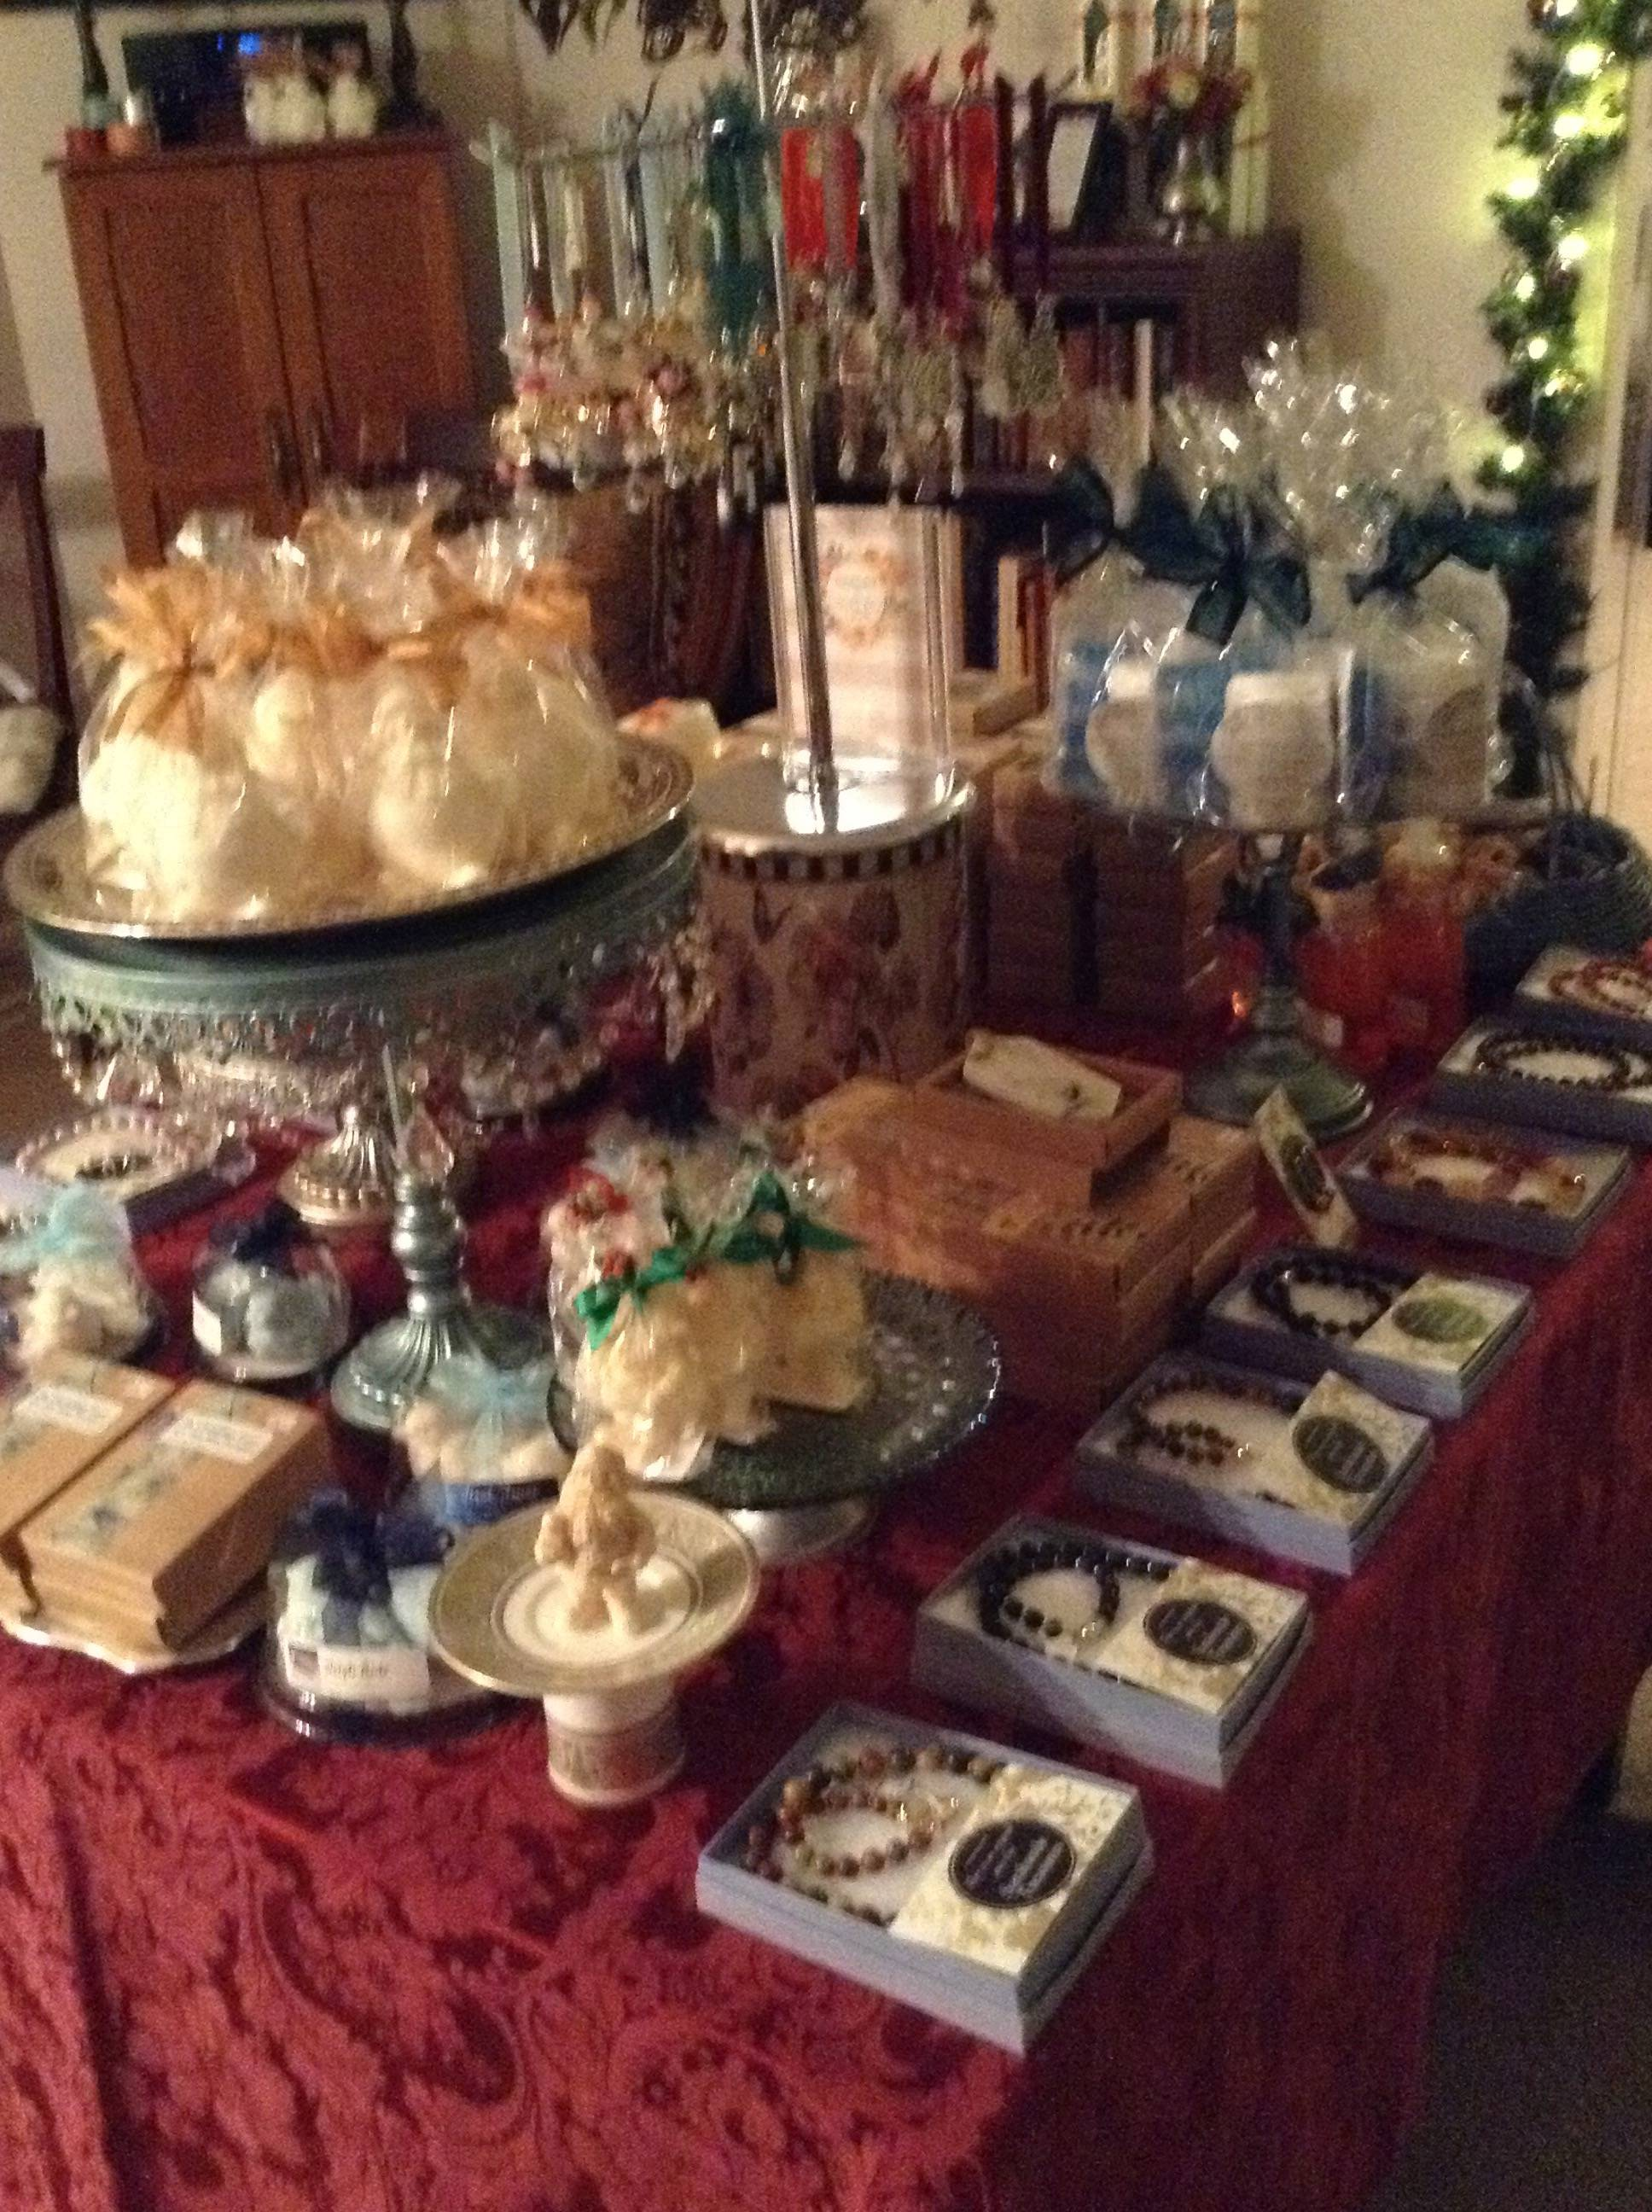 Festive Soaps and Giftware